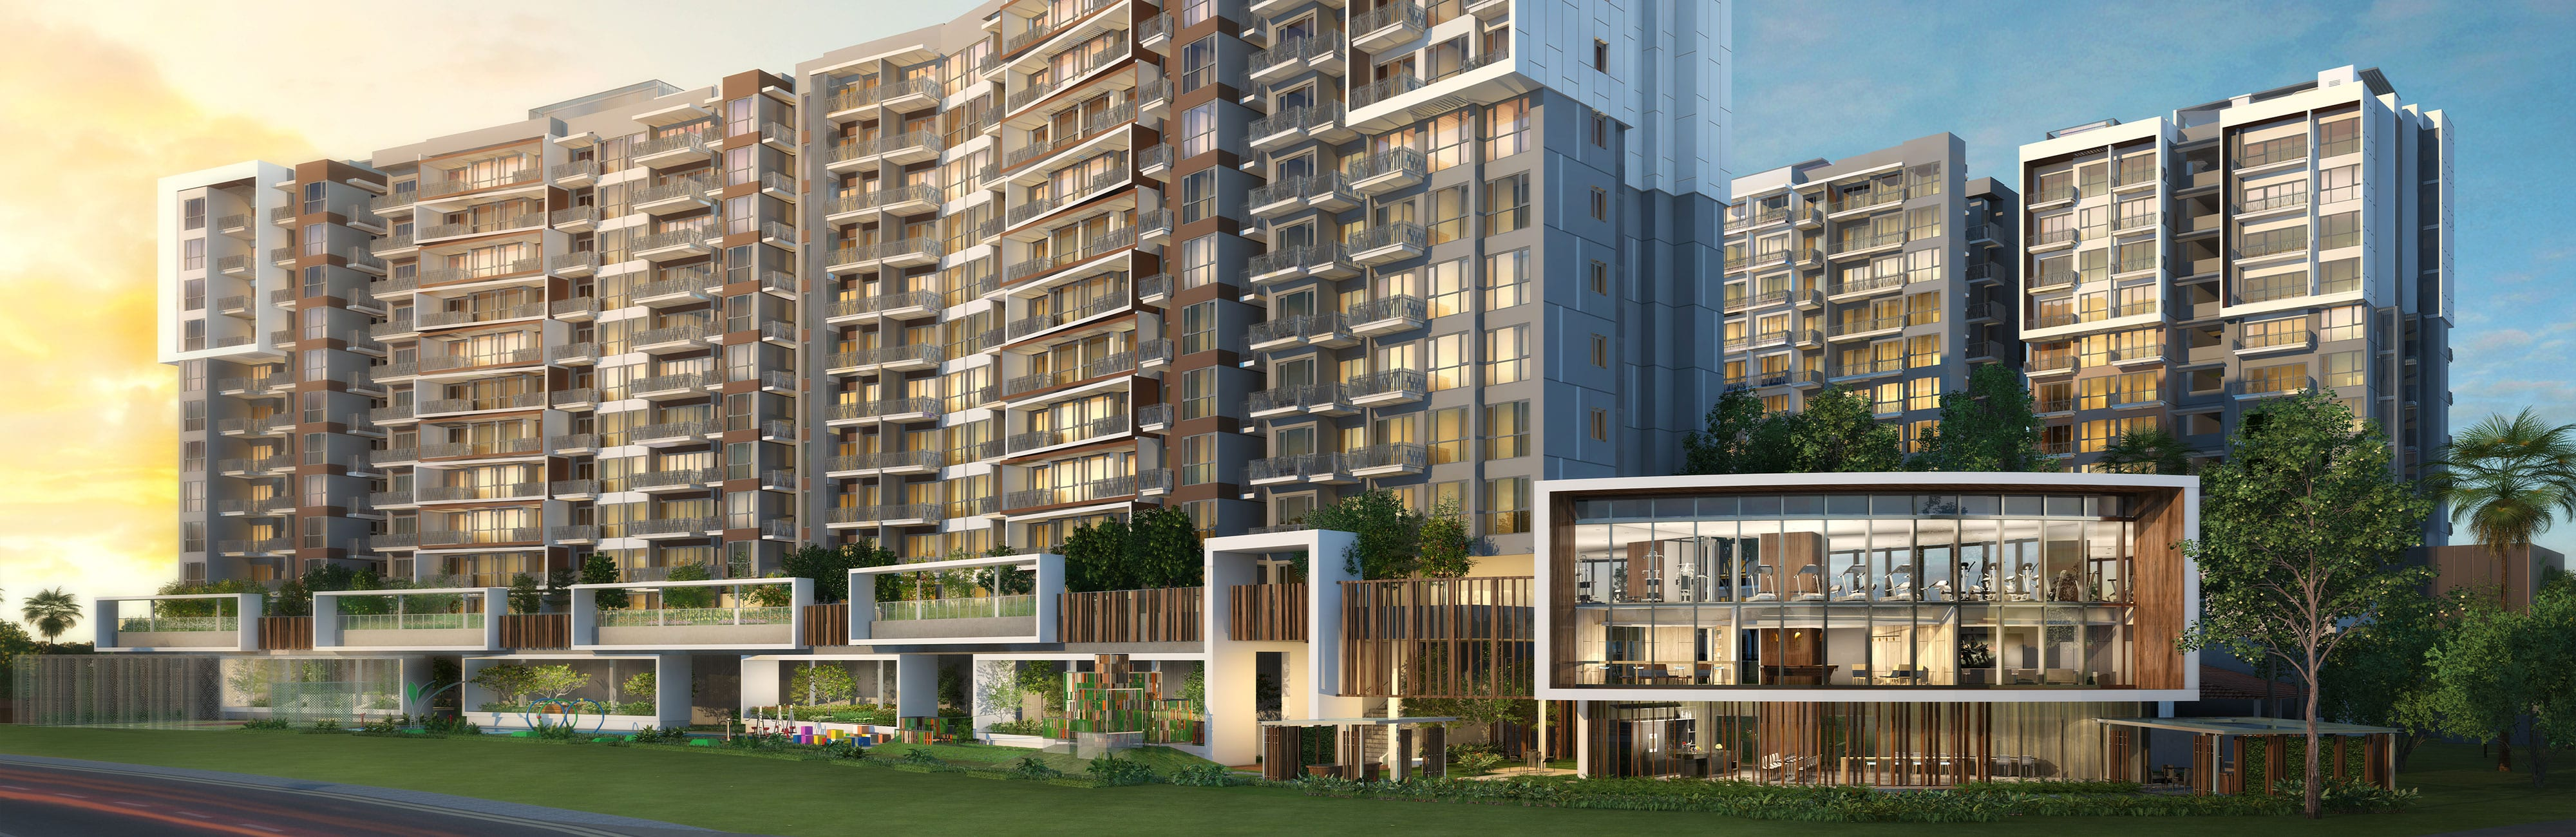 Ohmyhome New Launch Condo Parksuites Holland Grove Logo